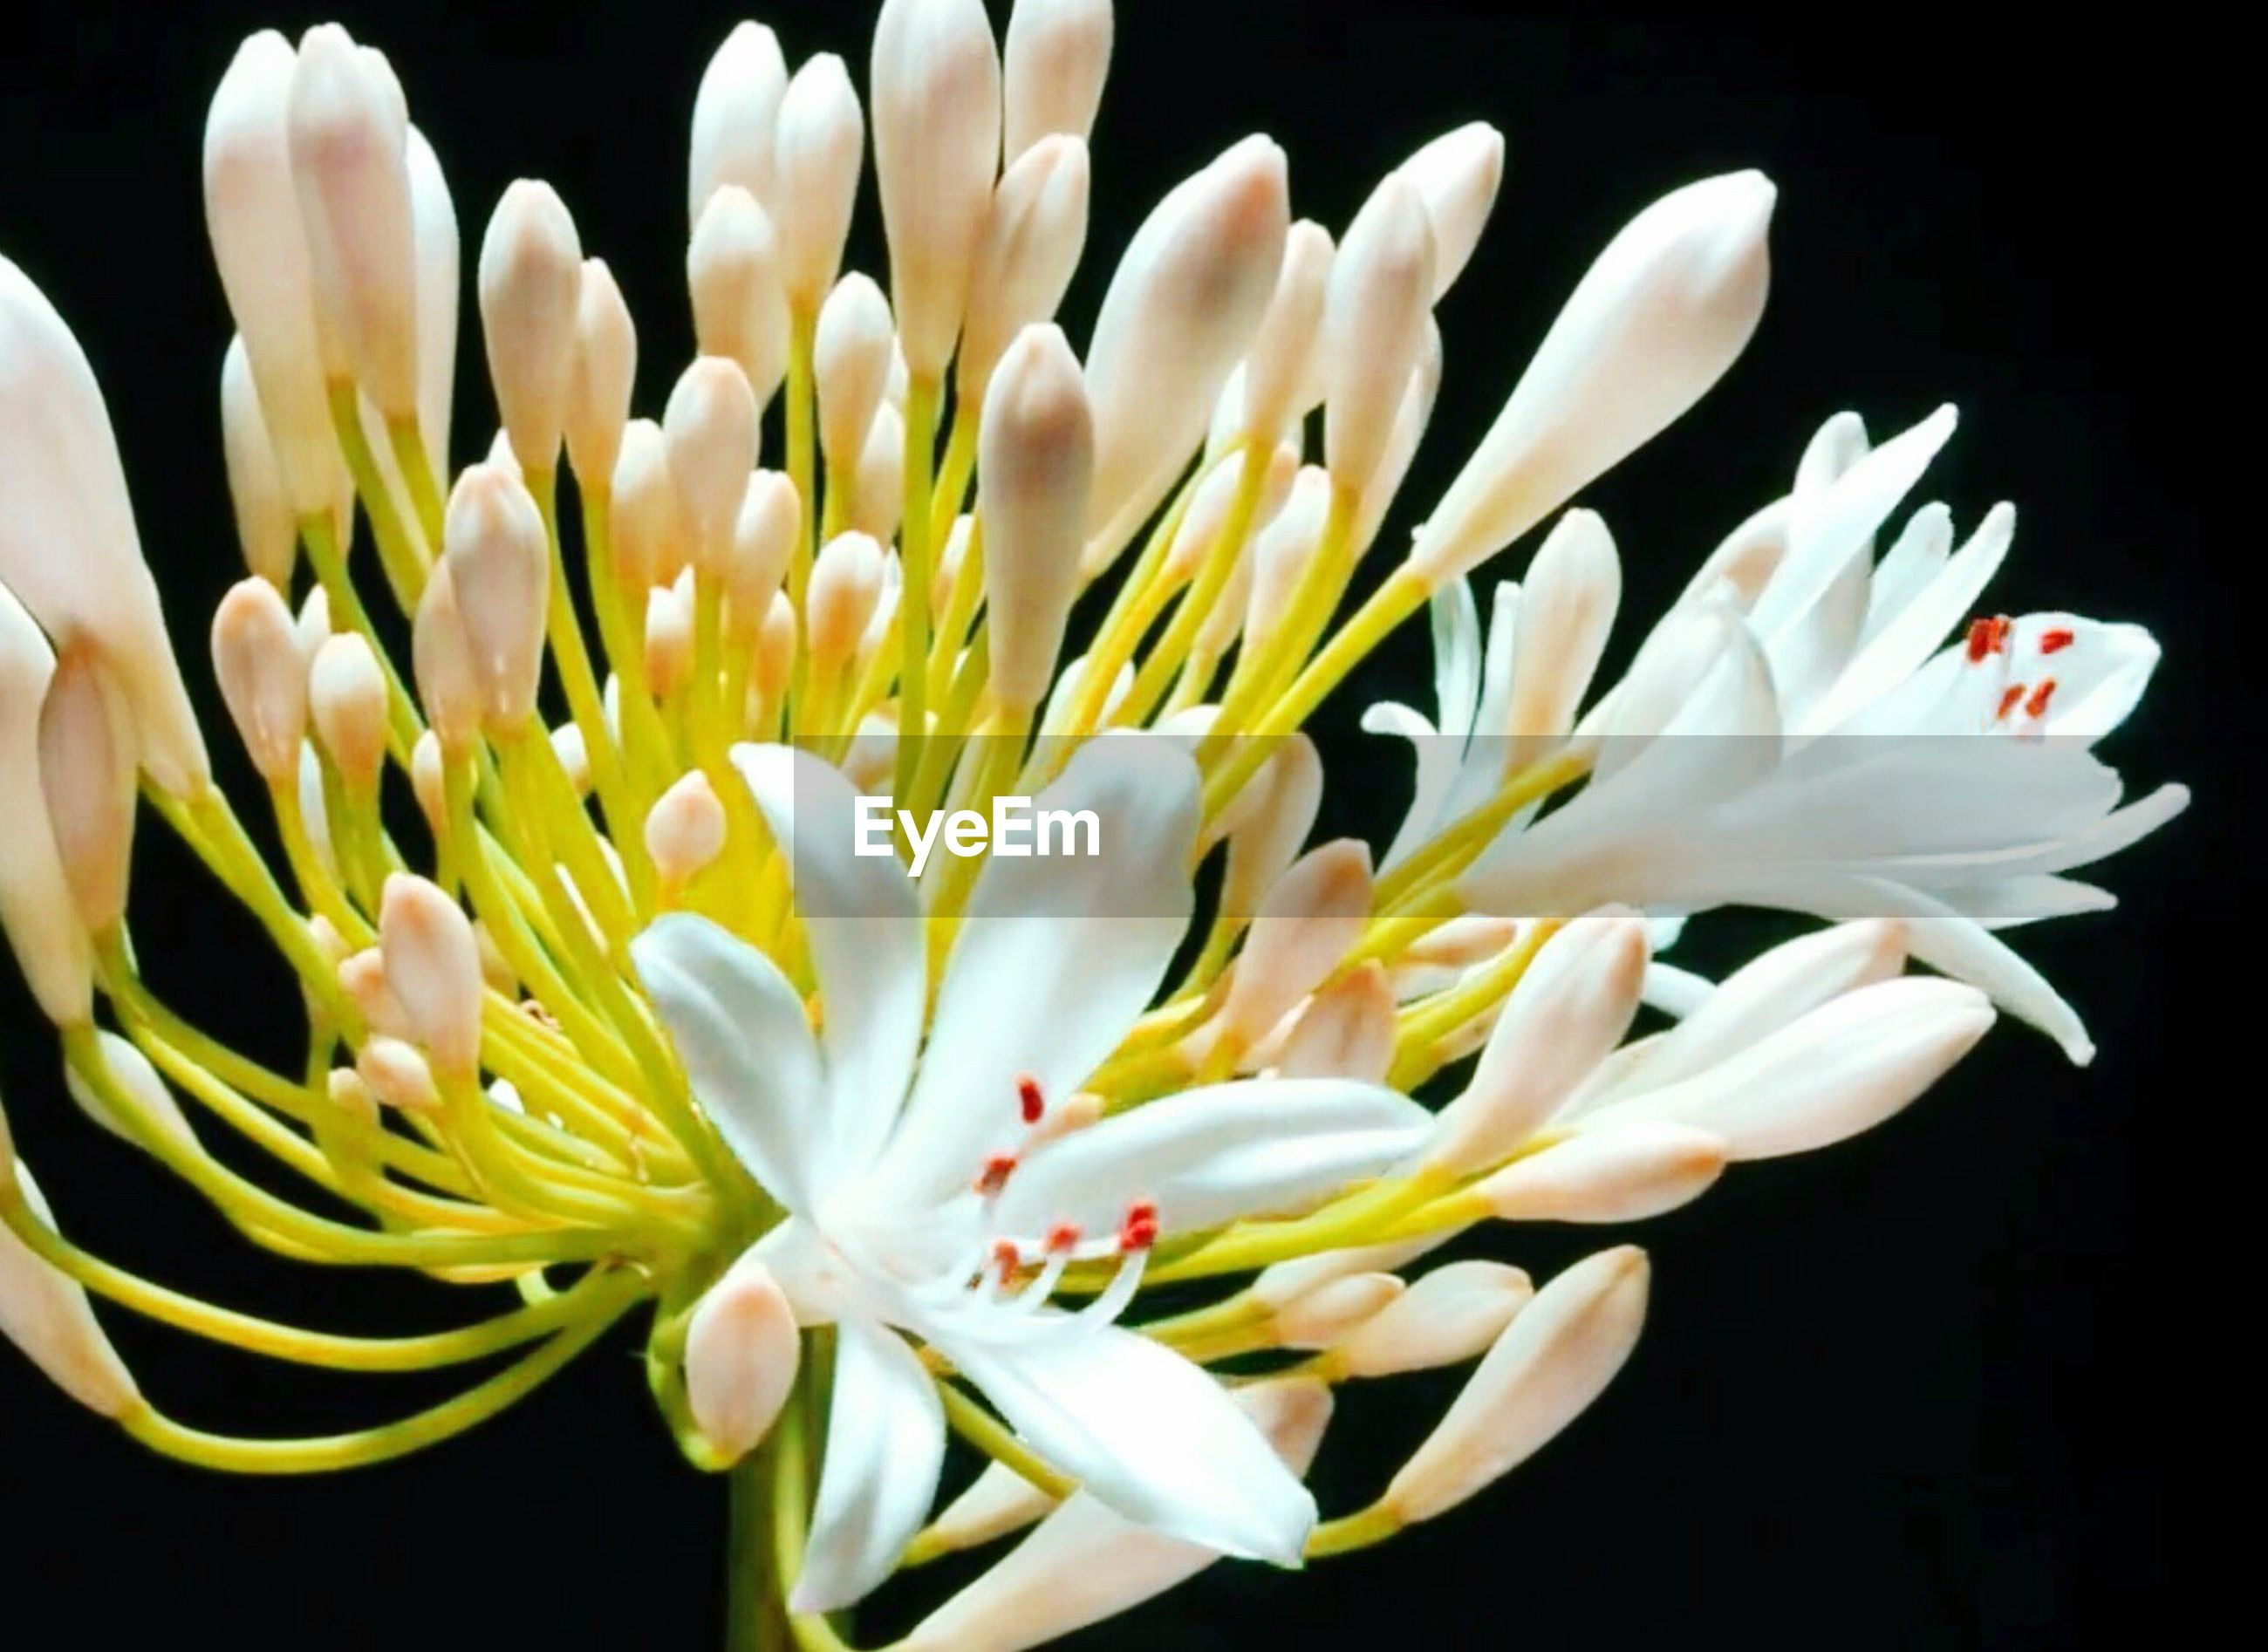 flower, petal, fragility, freshness, nature, beauty in nature, flower head, black background, plant, blossom, growth, close-up, no people, day, blooming, outdoors